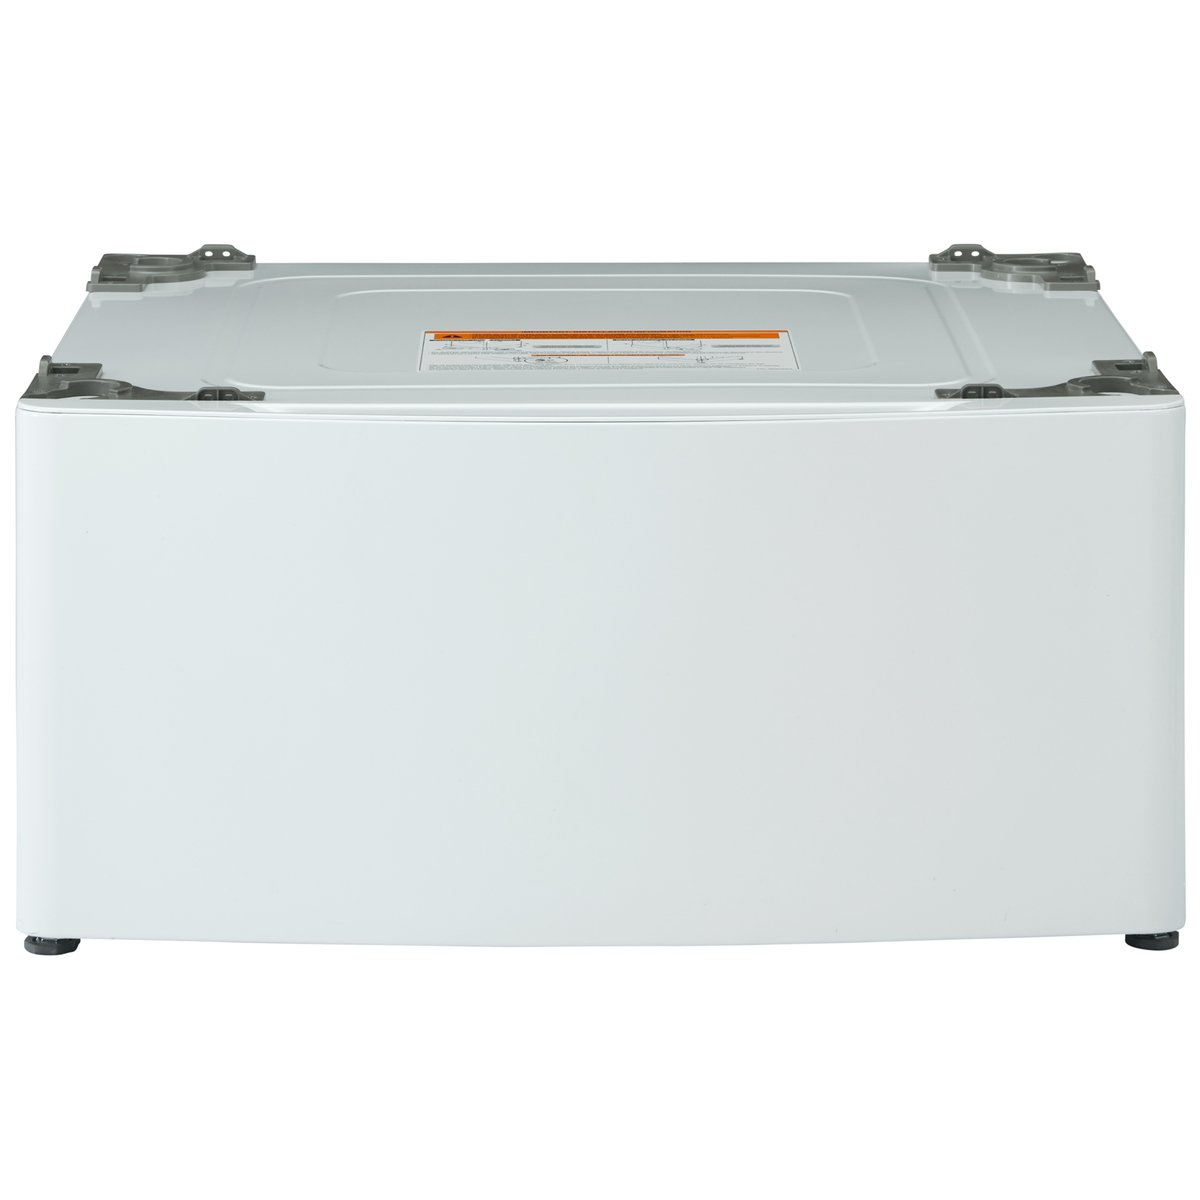 Kenmore Elite 51042 29'' Wide Laundry Pedestal with Storage Drawer in White, includes delivery and hookup (Available in select cities only)